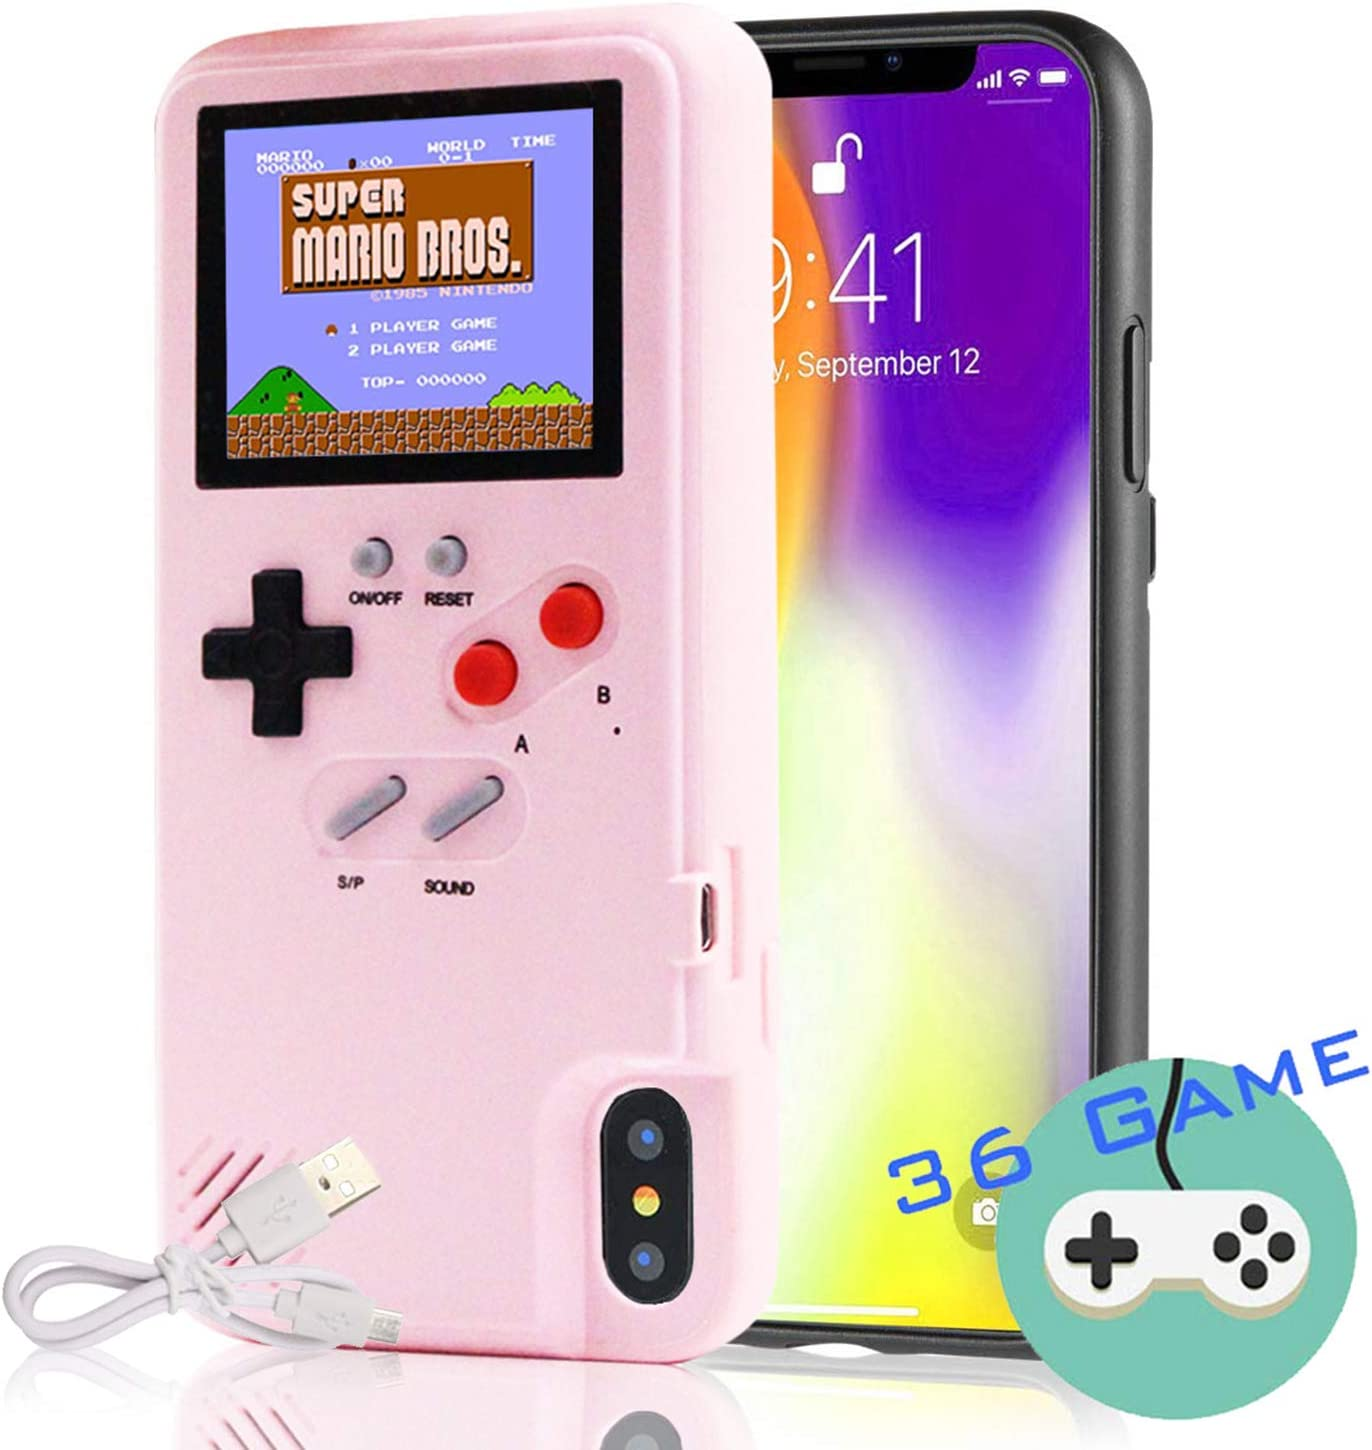 Gameboy Case for iPhone, Autbye Retro 3D Phone Case Game Console with 36 Classic Game, Color Display Shockproof Video Game Phone Case for iPhone 6/6S/7/8 (Pink)